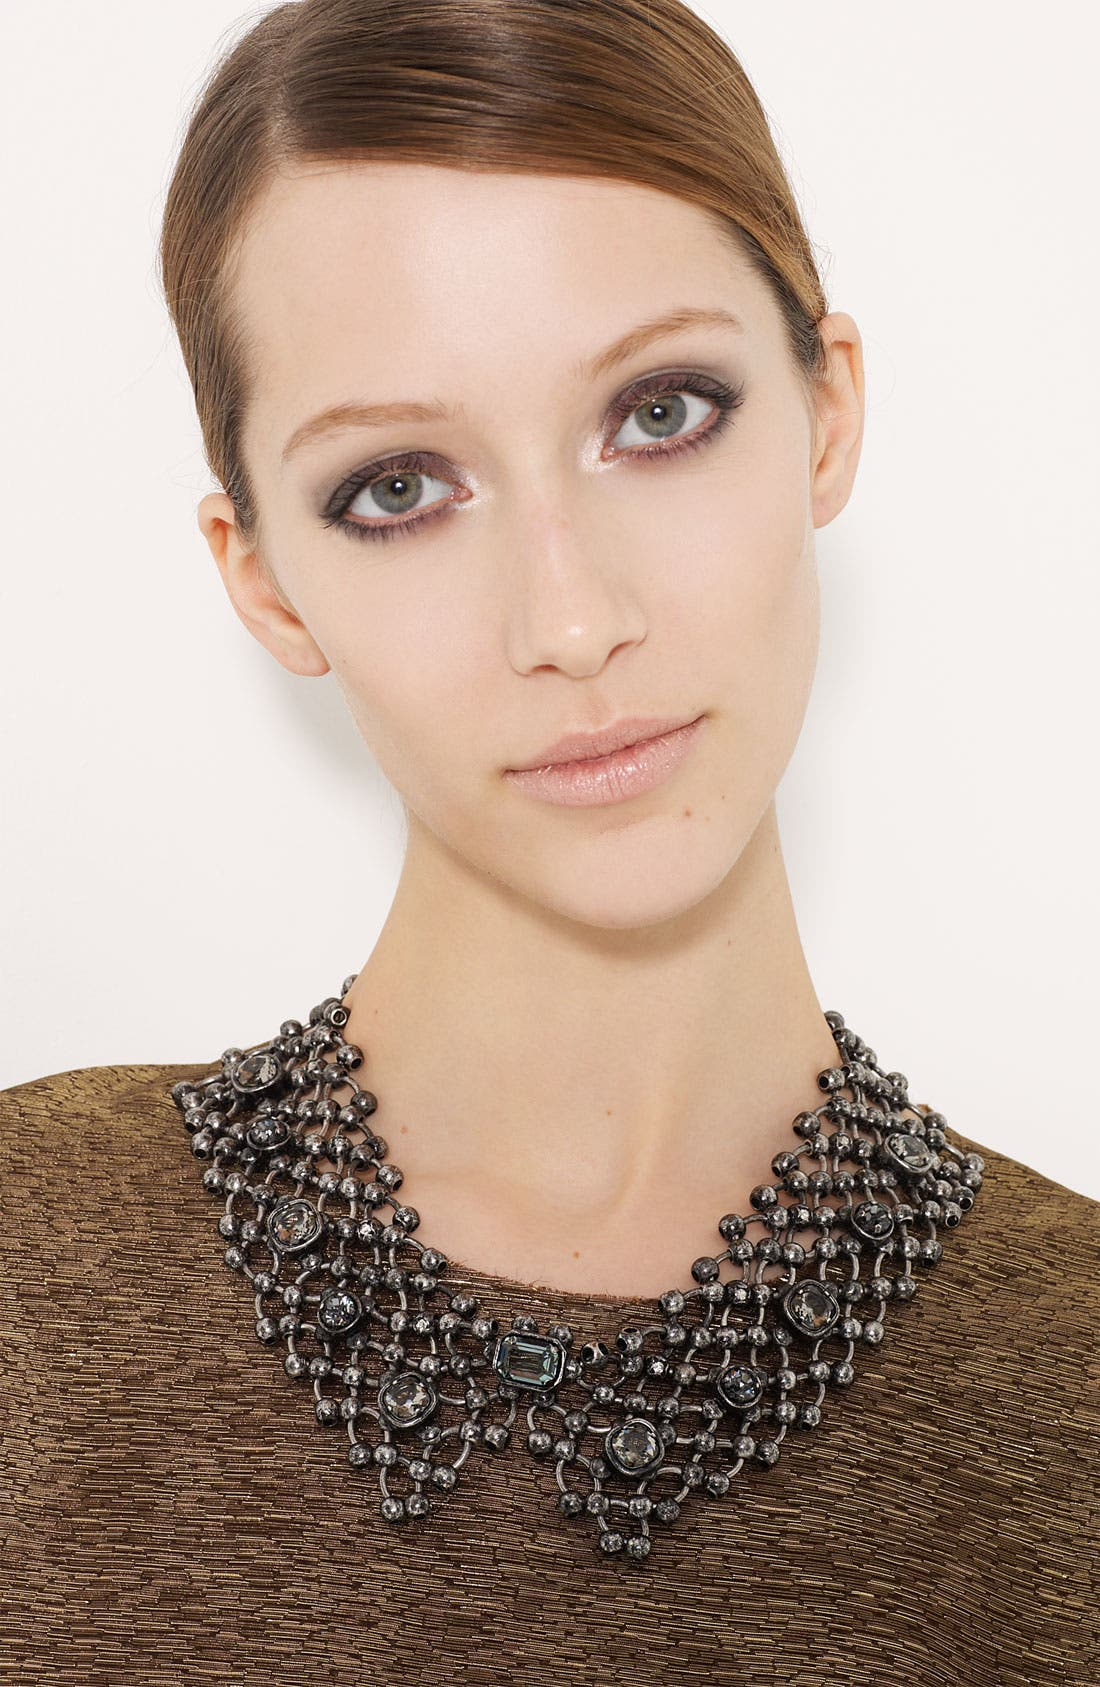 Alternate Image 1 Selected - Lanvin Côte de Maille Collar Necklace